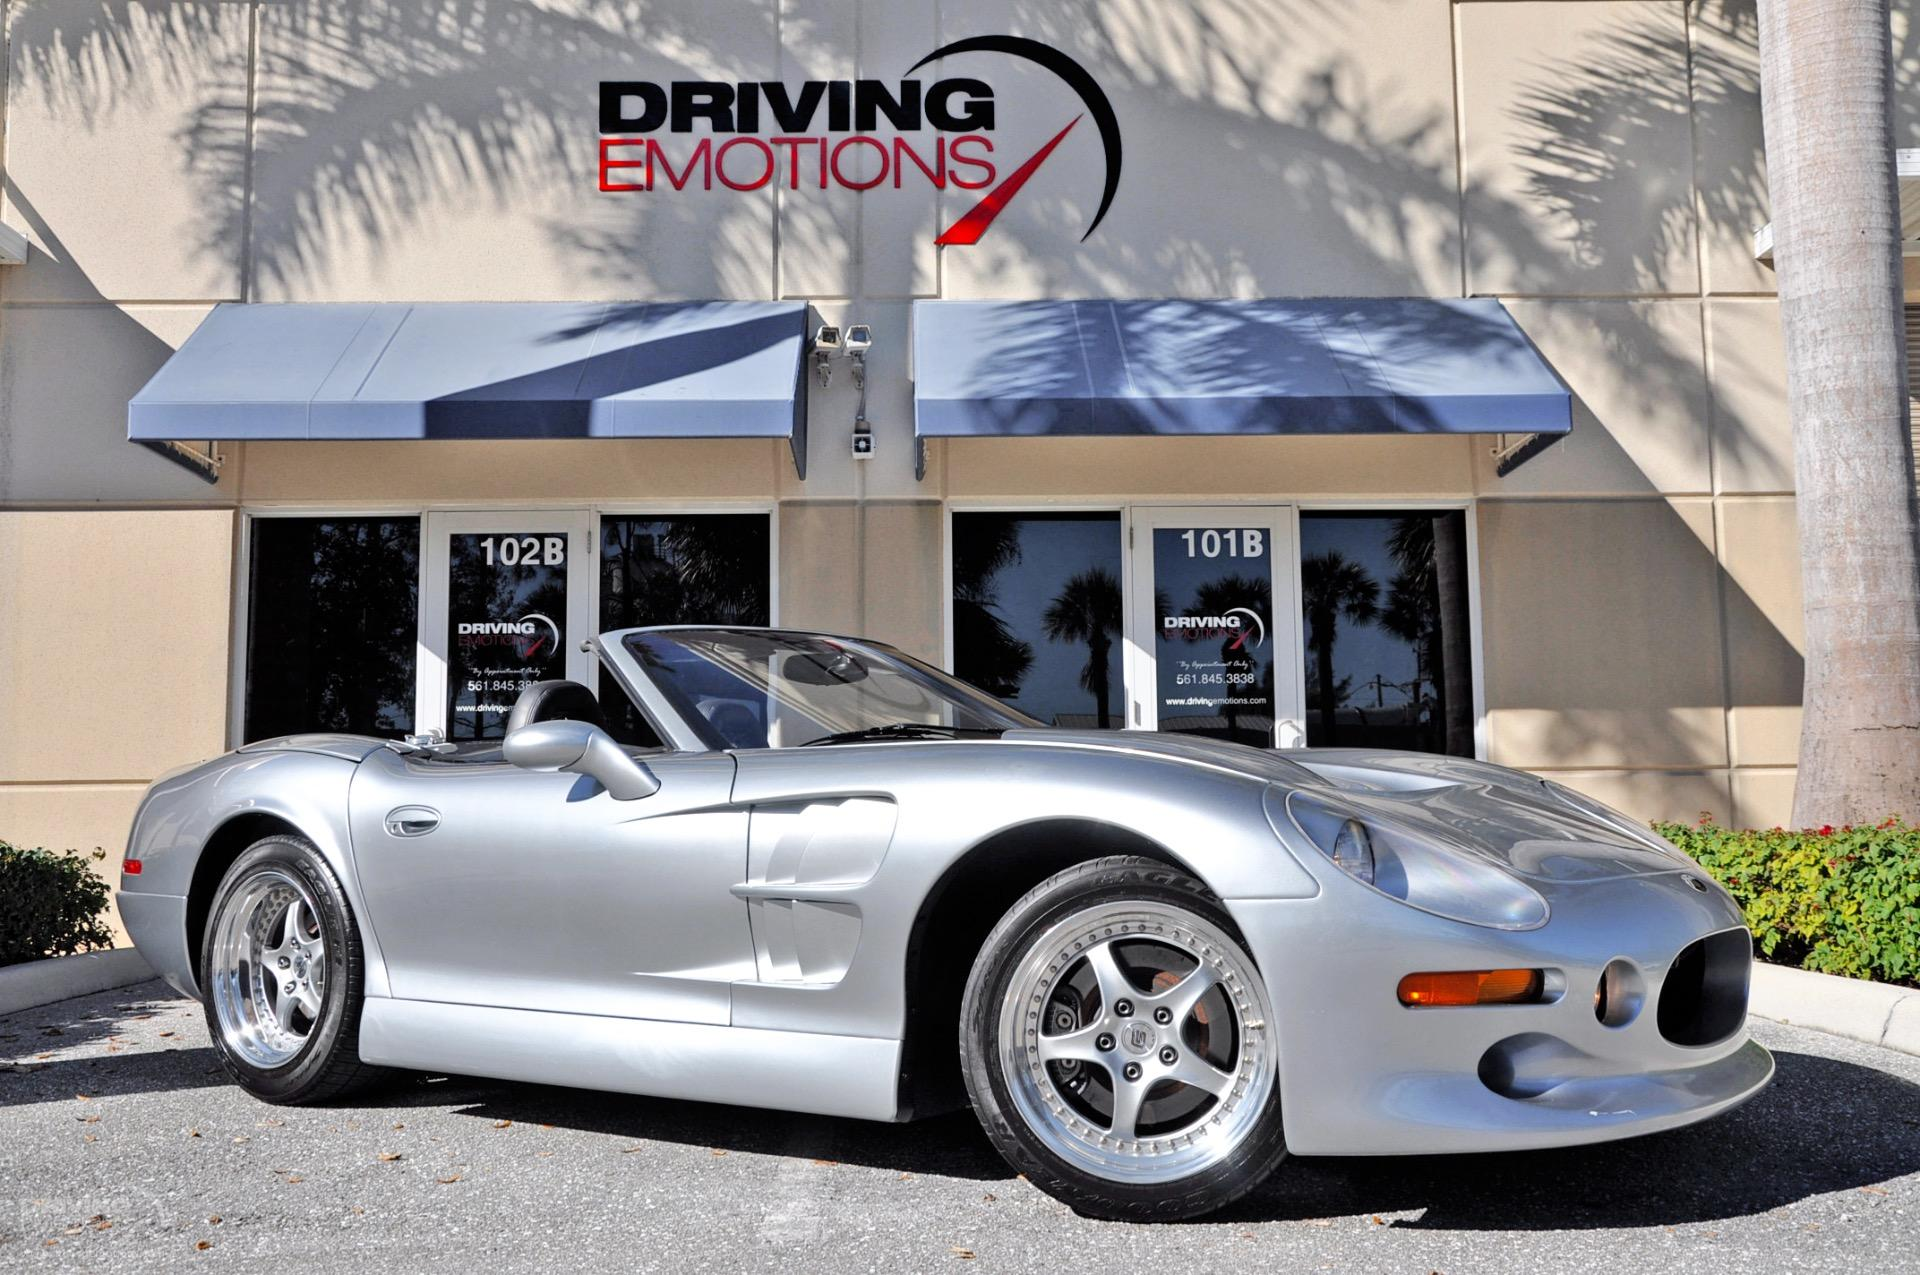 1999 Shelby Series1 Roadster Convertible 2-Door: 1999 SHELBY SERIES 1 ROADSTER! SILVER/BLACK! LOW MILES! RARE! COLLECTOR! 6-SPD!!